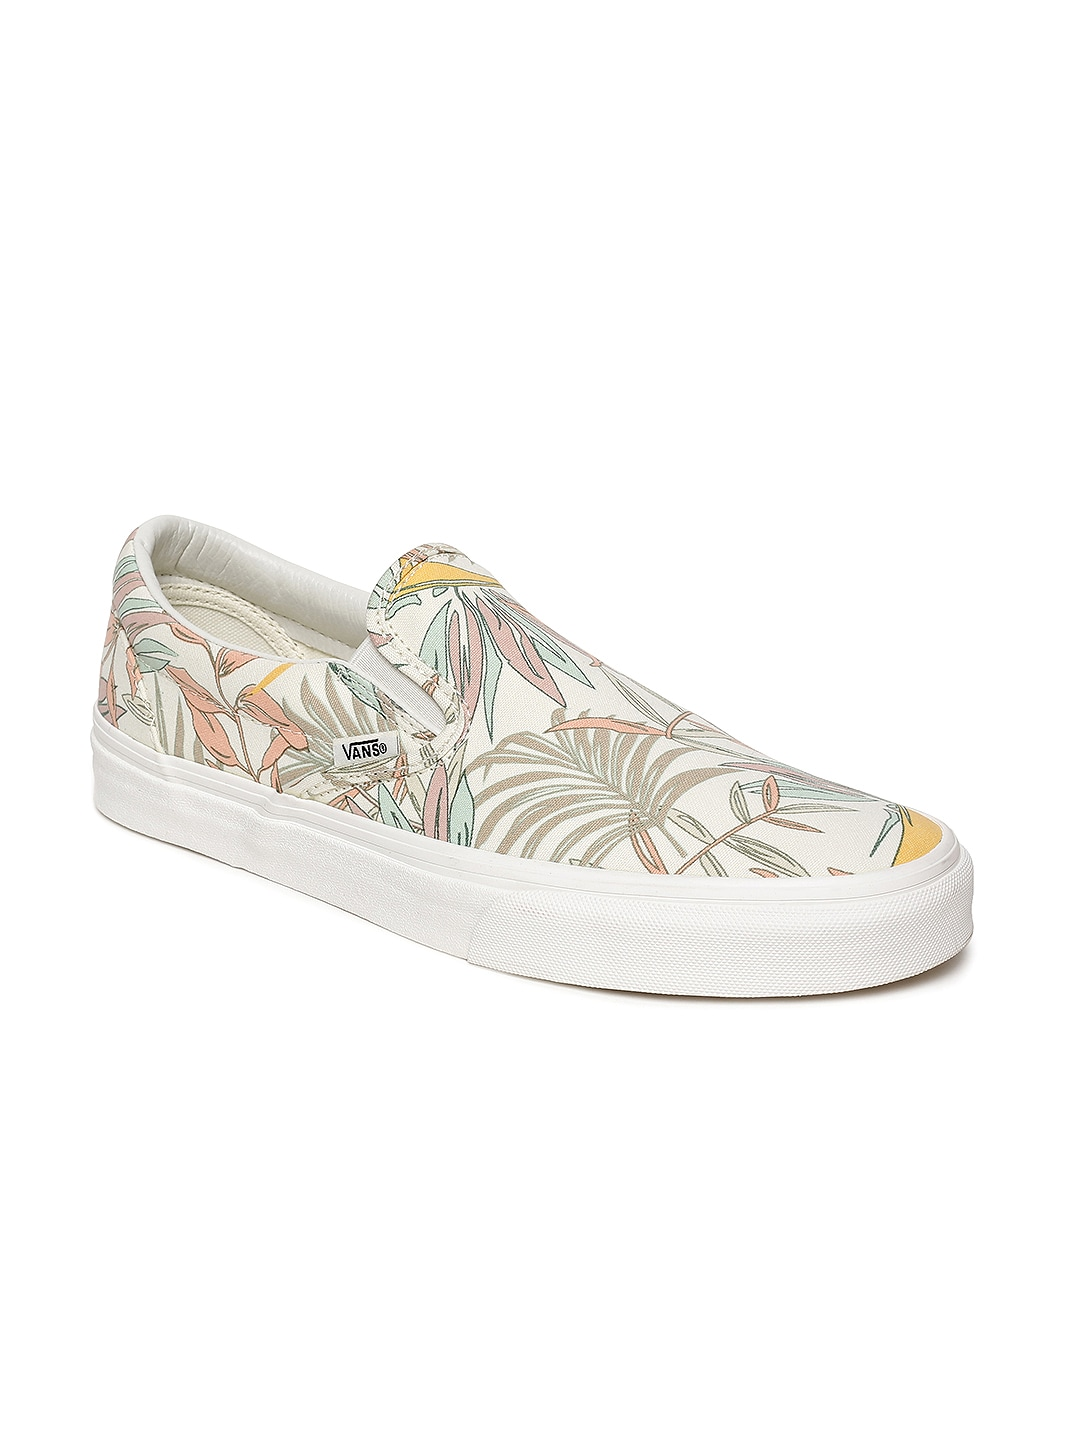 Vans White Shoes - Buy Vans White Shoes online in India b8936e273